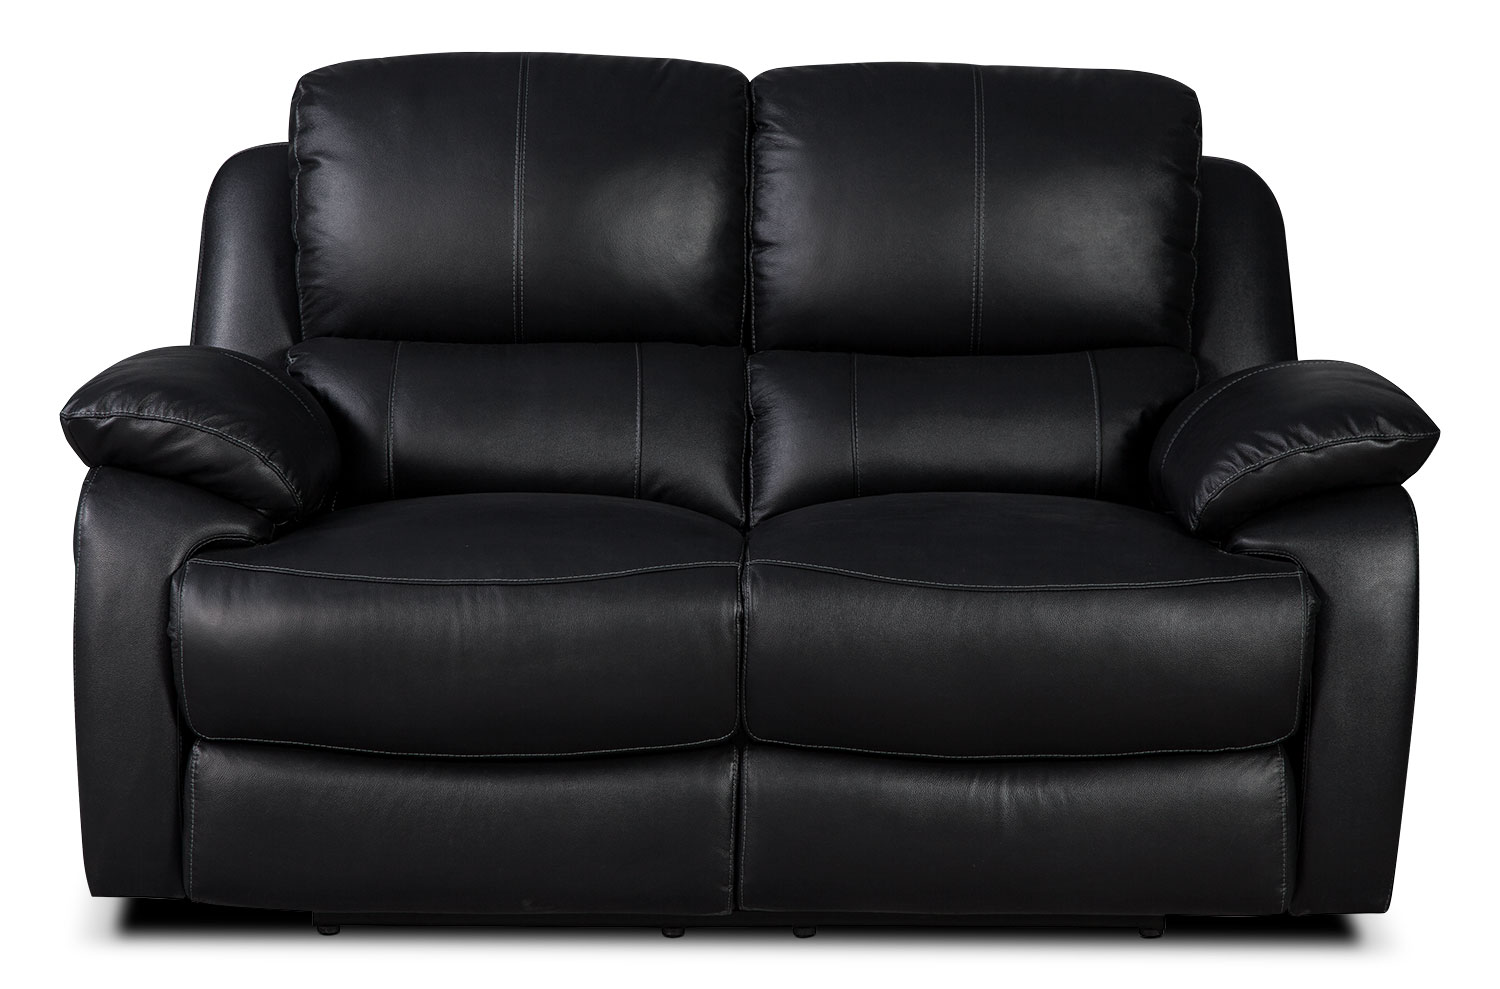 Living Room Furniture - Cairo Genuine Leather Power Reclining Loveseat – Black